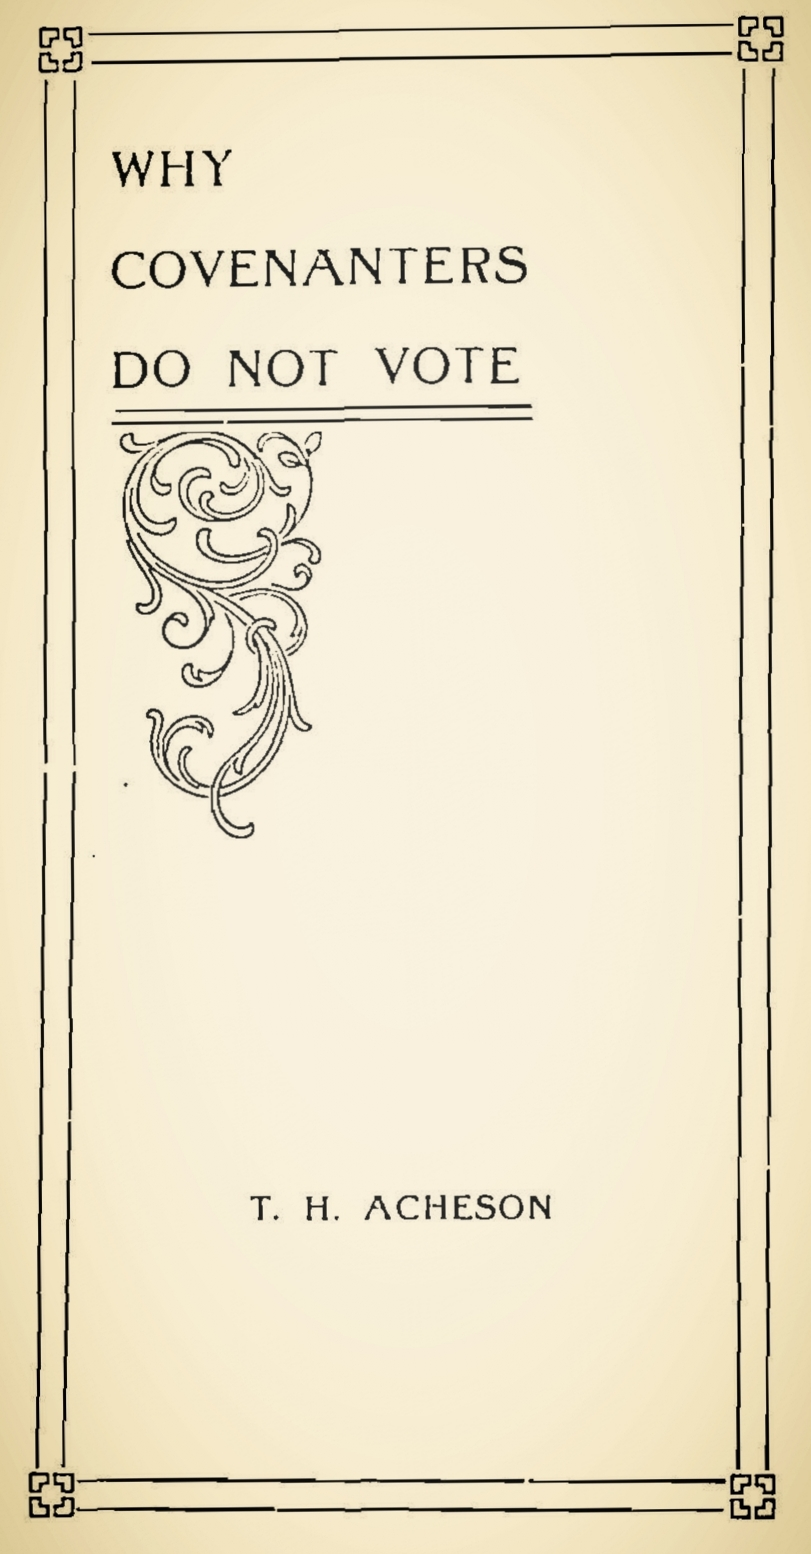 Acheson, Thomas Houston, Why Covenanters Do Not Vote Pt. 2 Title Page.jpg